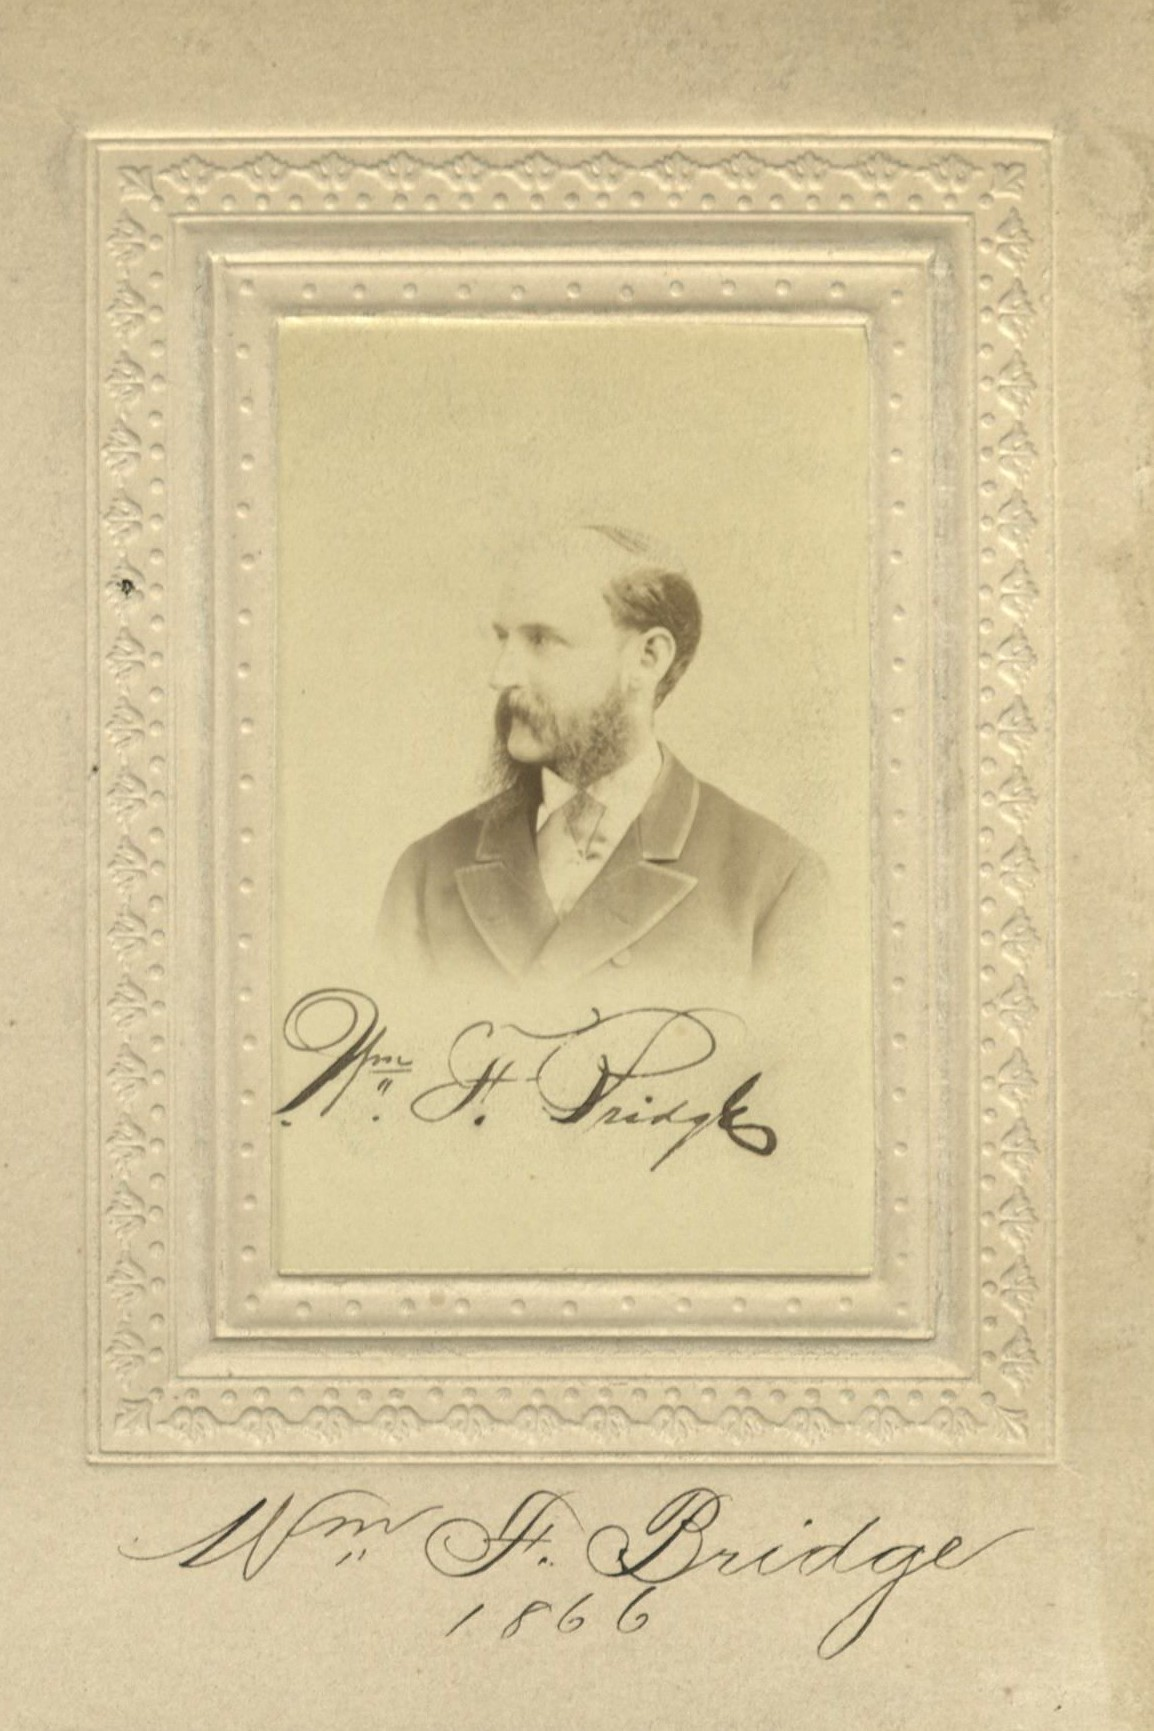 Member portrait of William F. Bridge